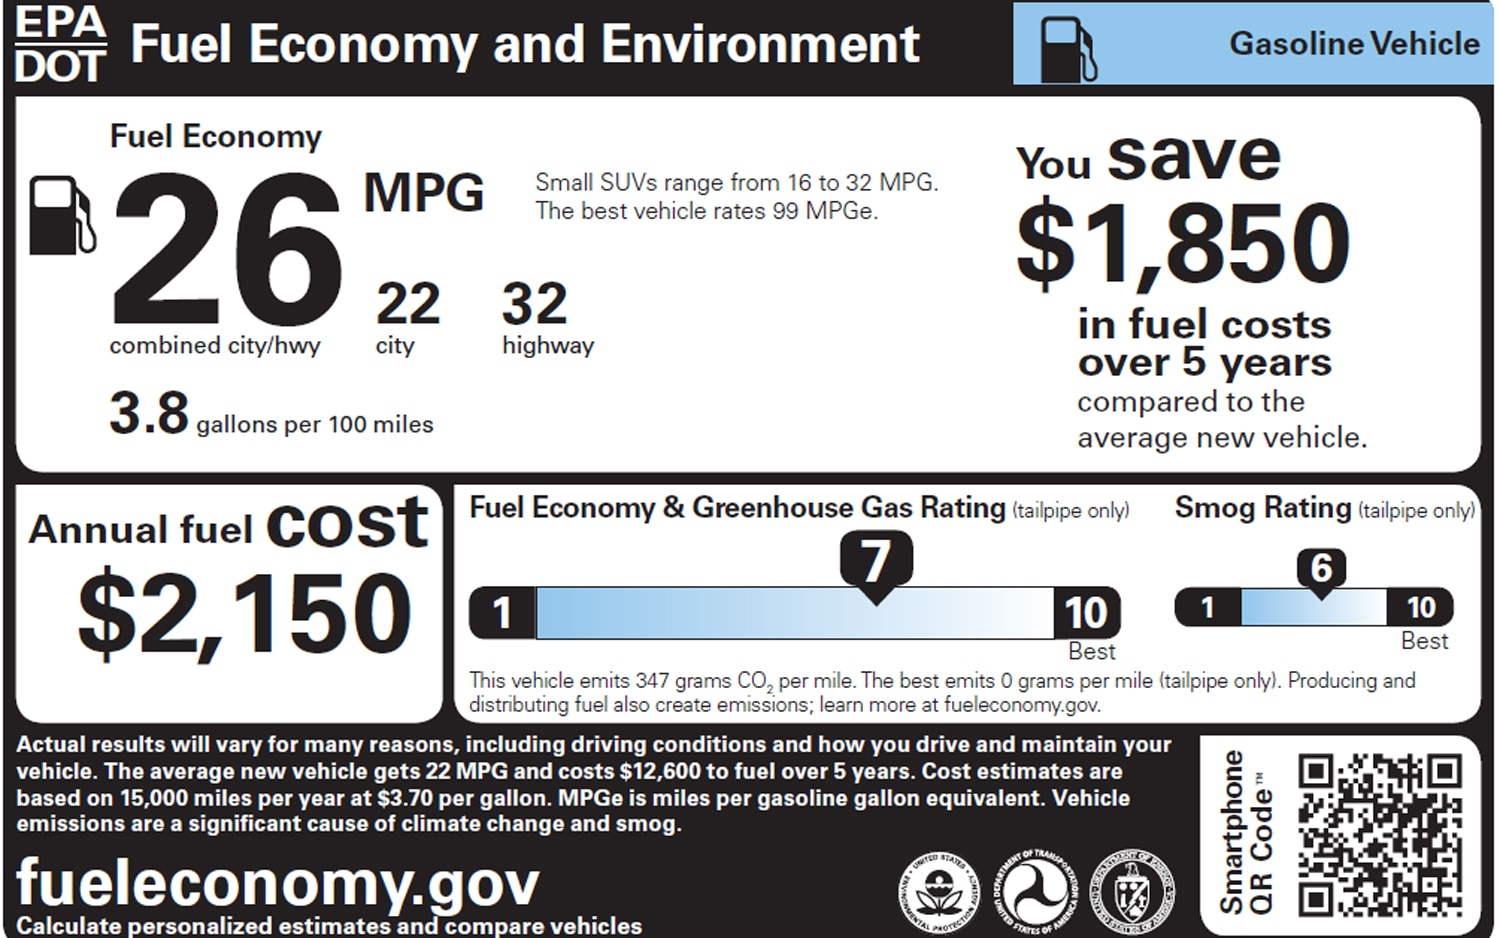 2013 Epa Window Sticker Gasoline1